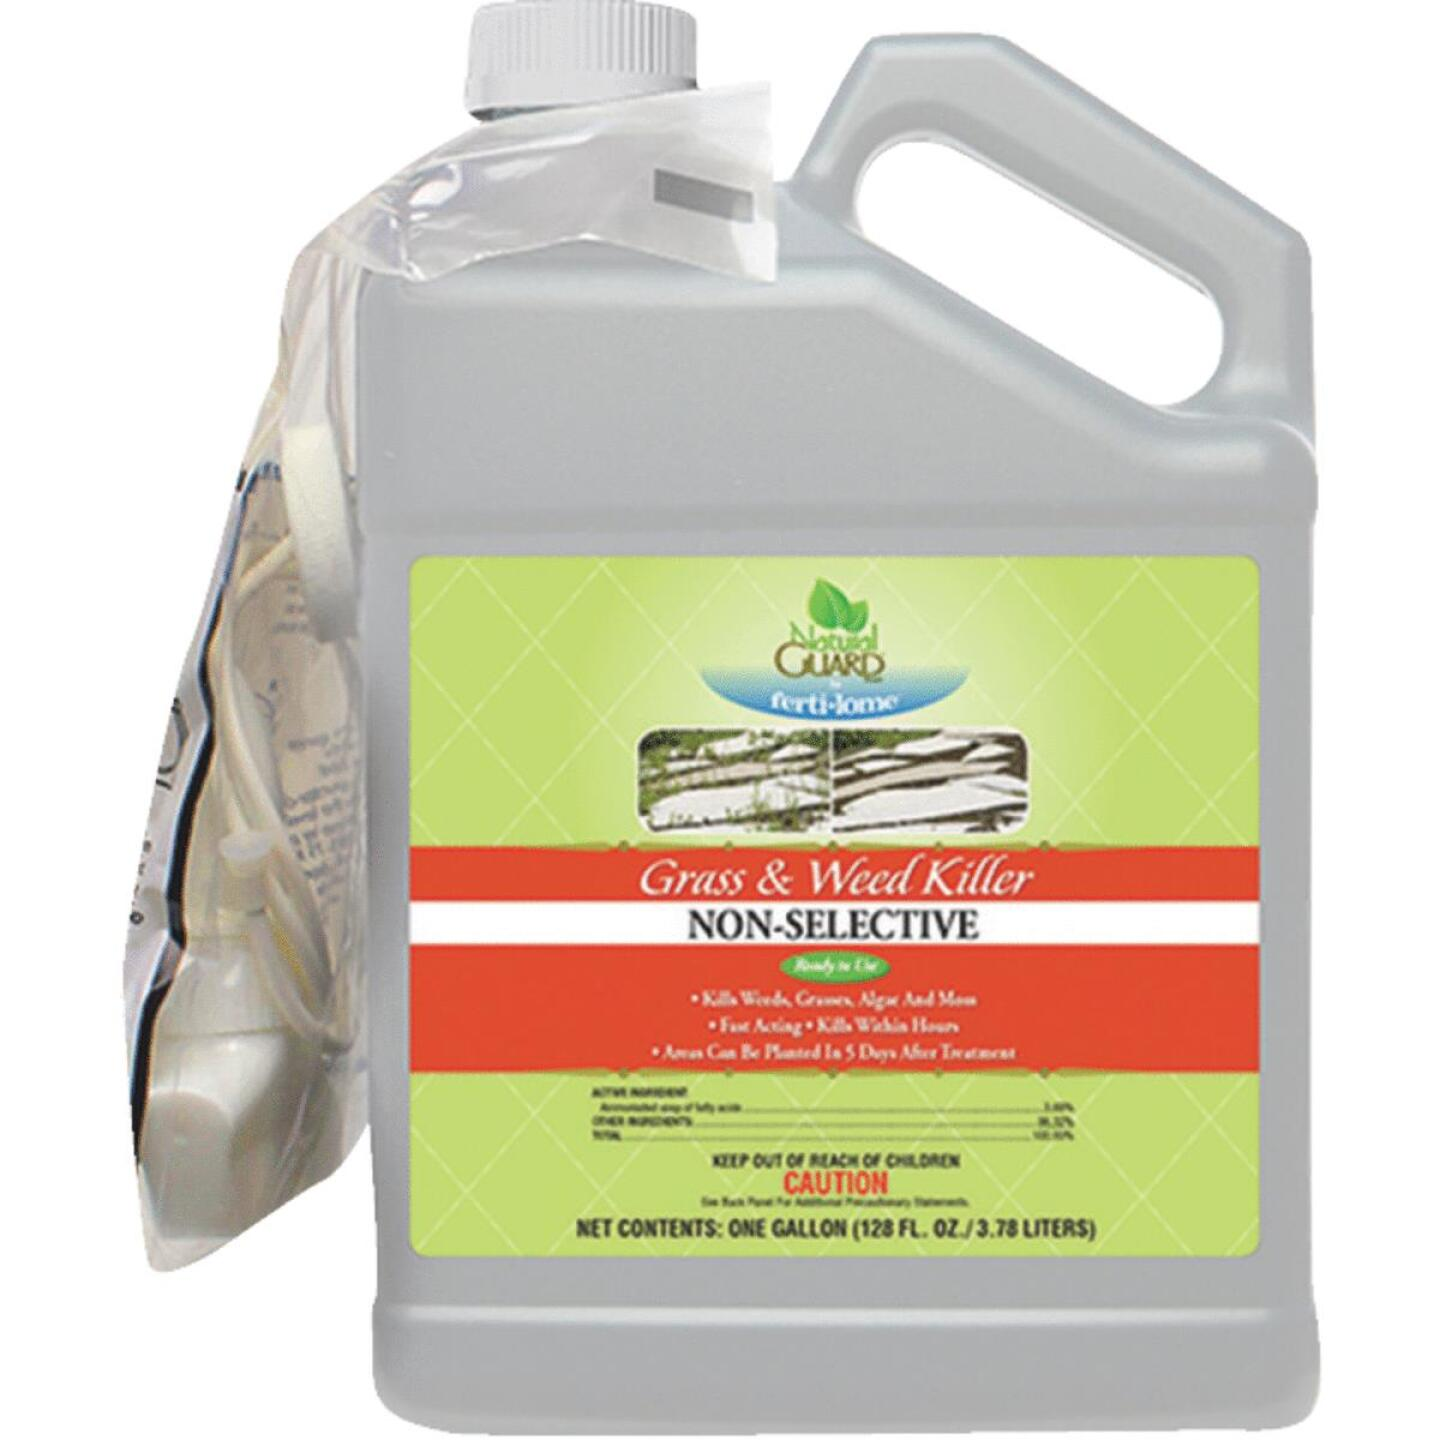 Natural Guard 1 Gal. Ready To Use Trigger Spray Weed & Grass Killer Image 1